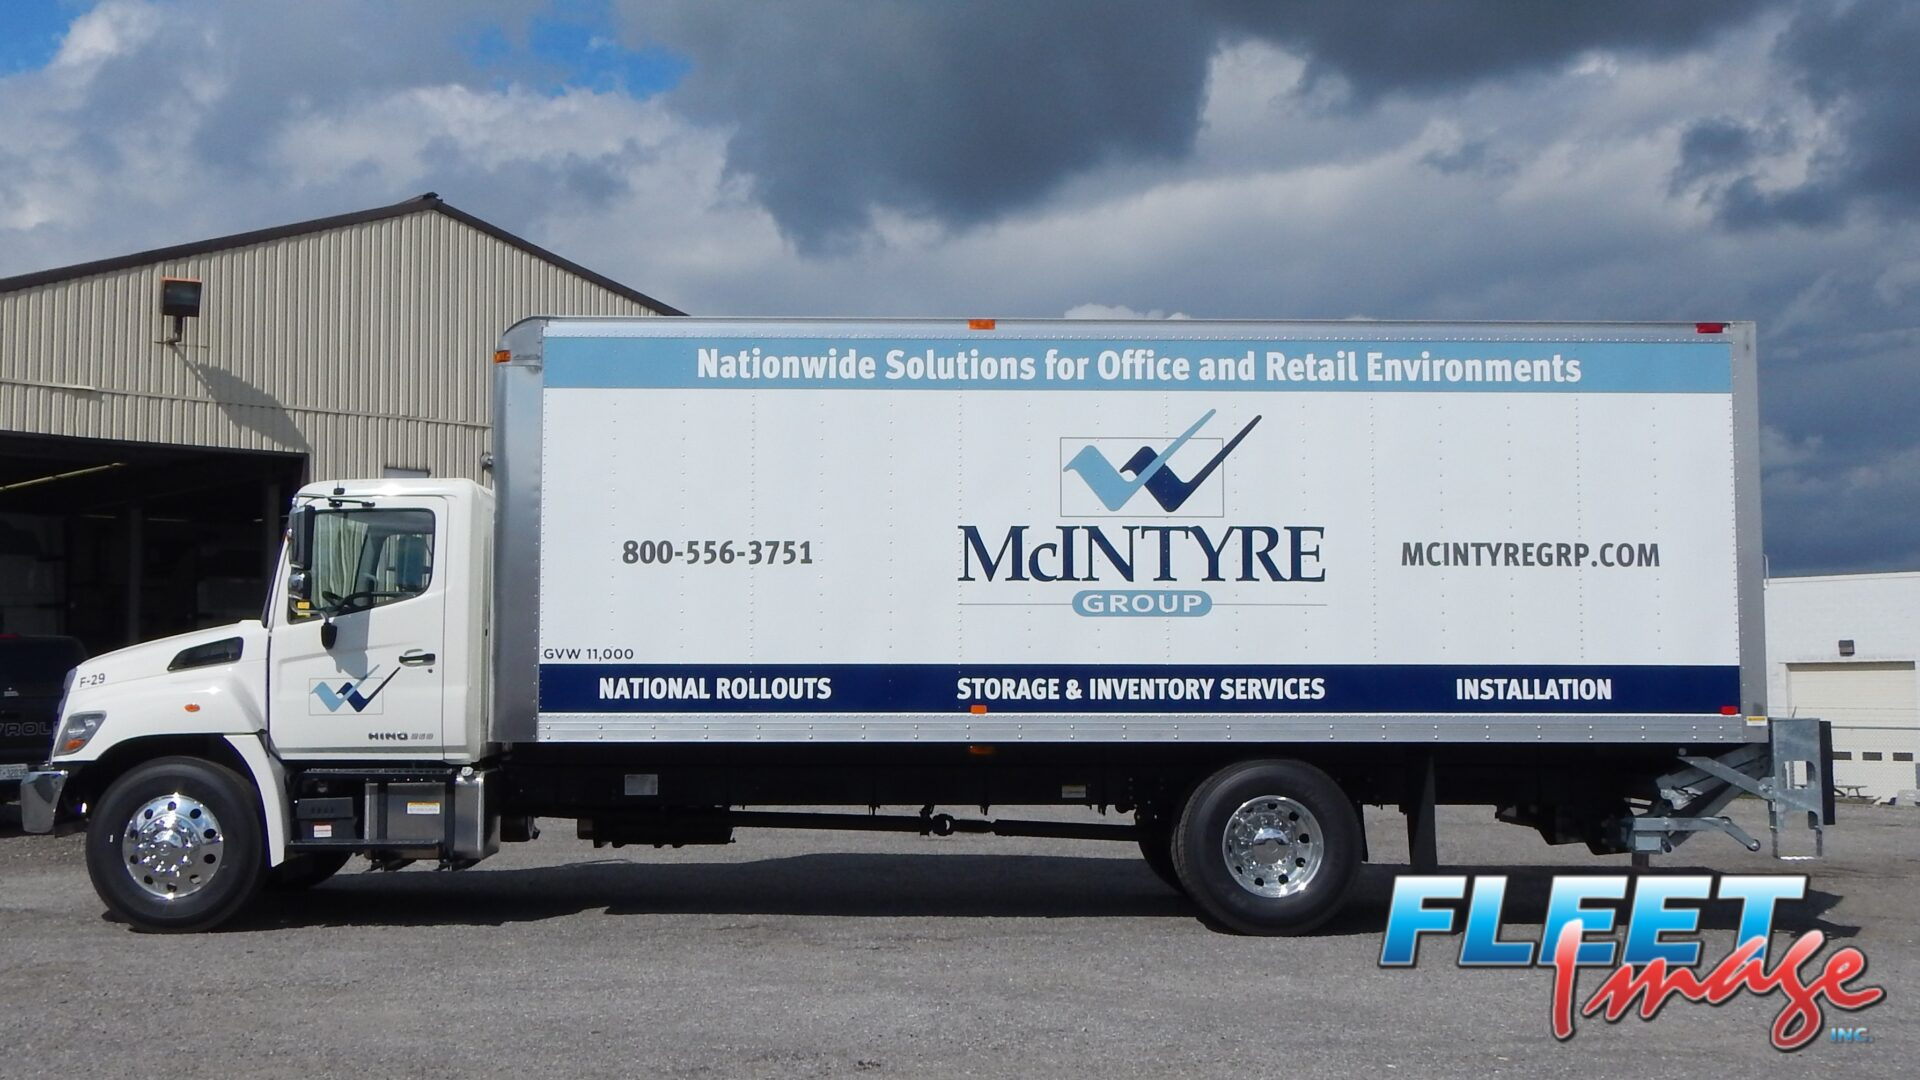 McINTYRE GROUP decal sticker on a truck